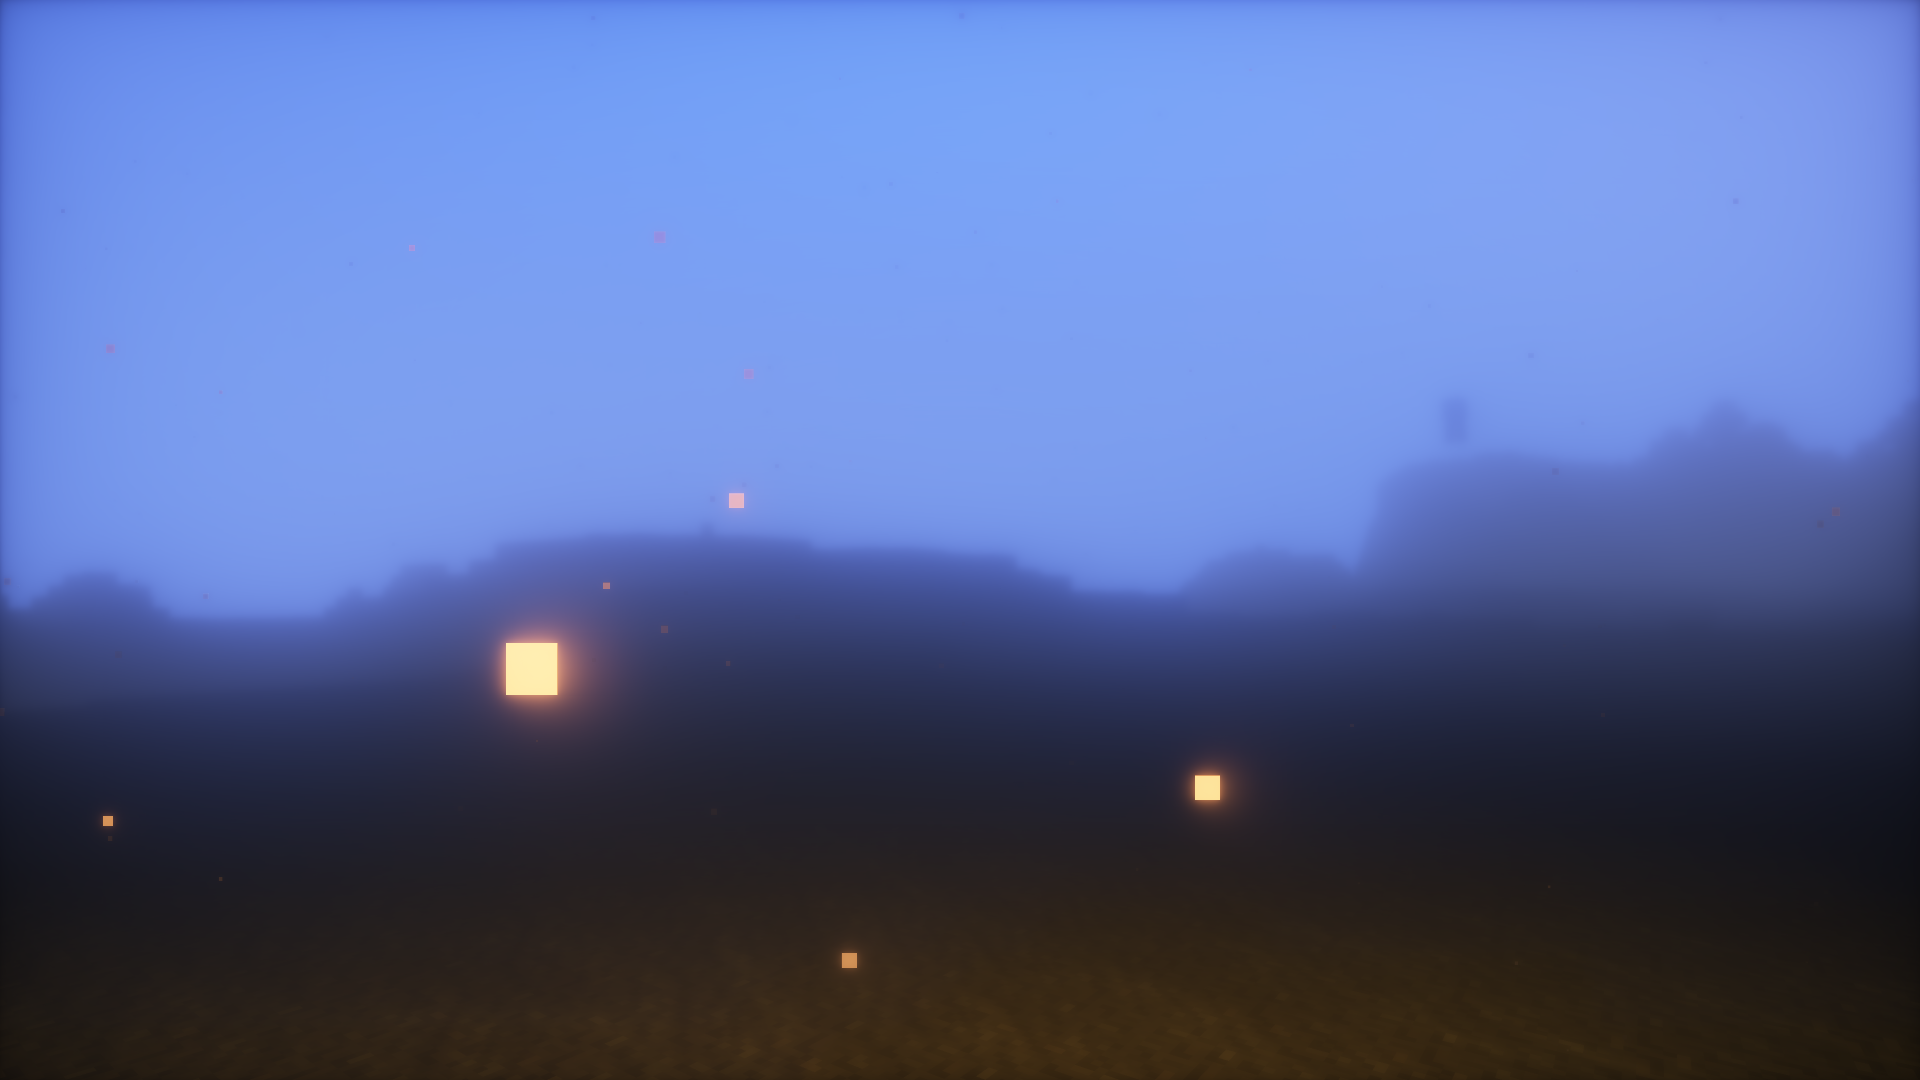 Must see Wallpaper Minecraft Night - thumb-1920-733571  Pic_74784.png